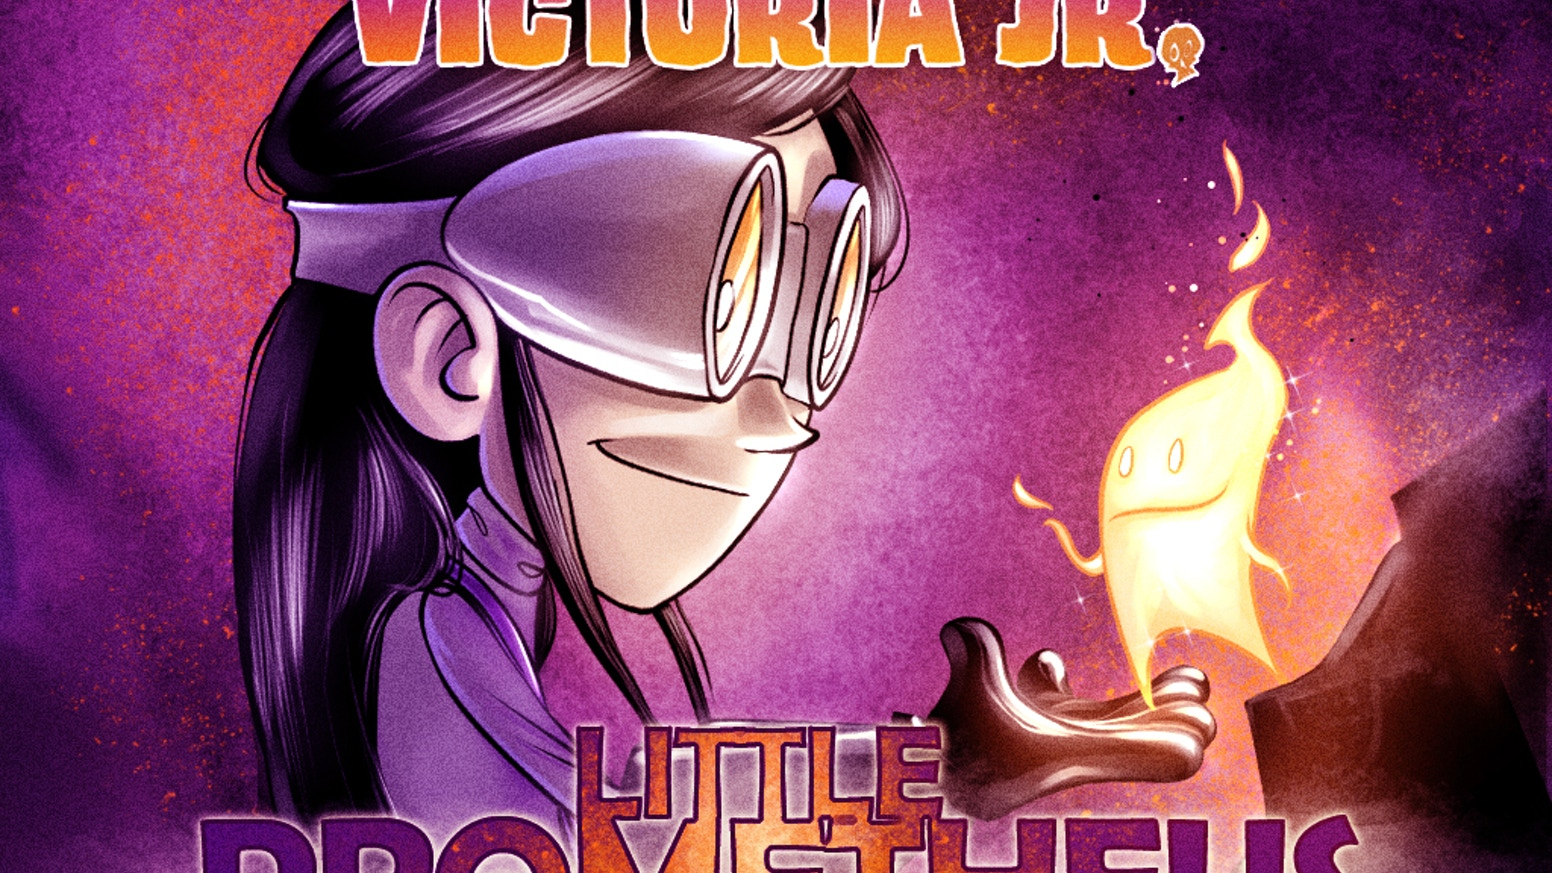 Victoria embarks on a quest to get the spark of the sun to warm the cold, undead hearts of her family. Everyone deserves fire!